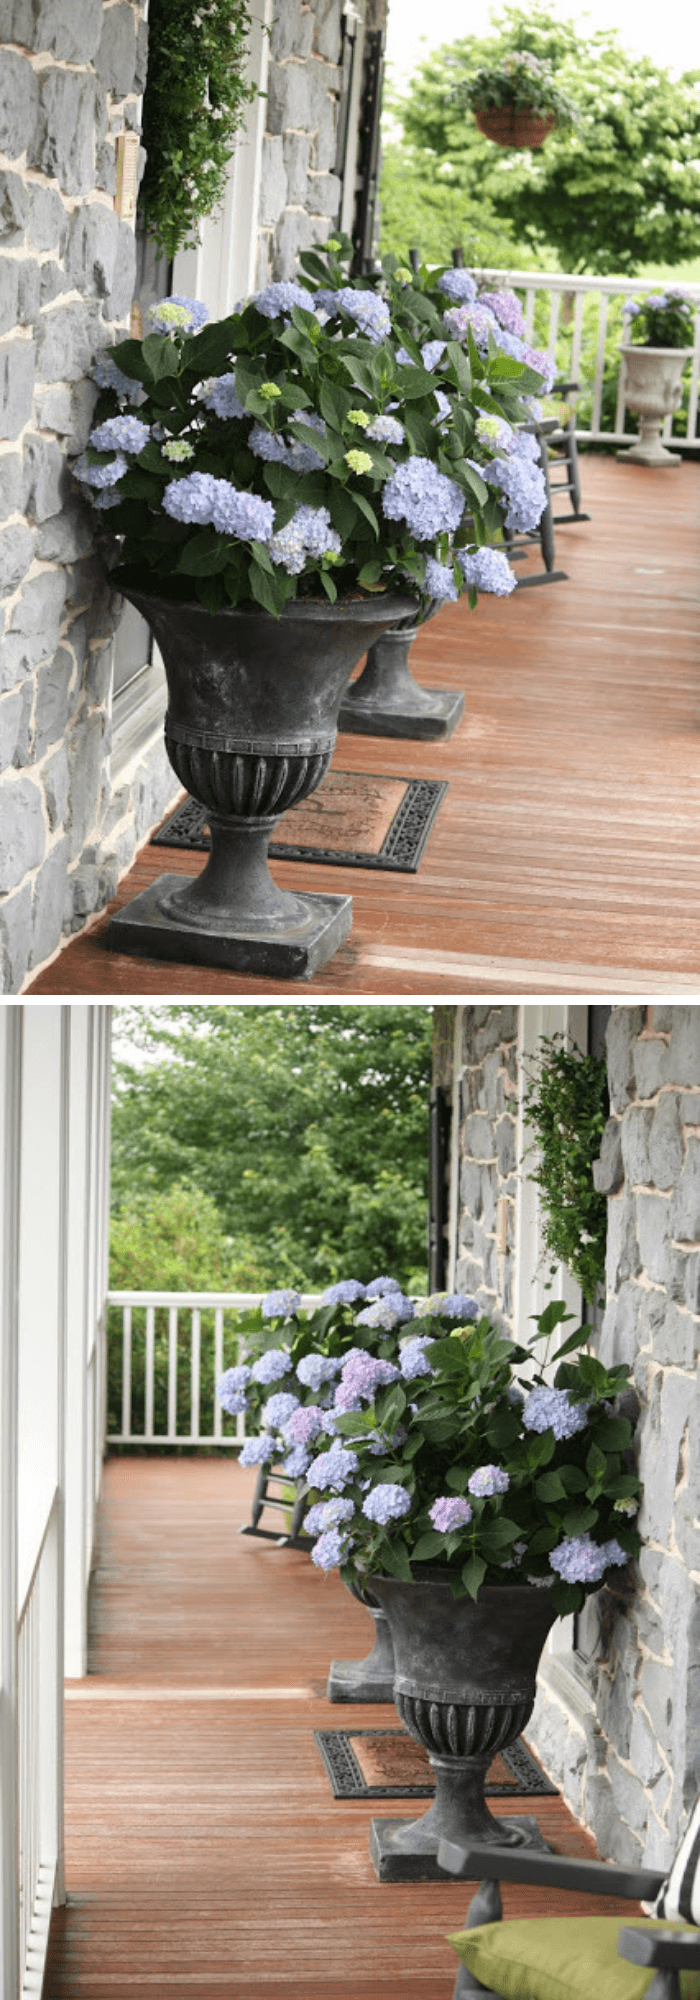 The urns of hydrangeas